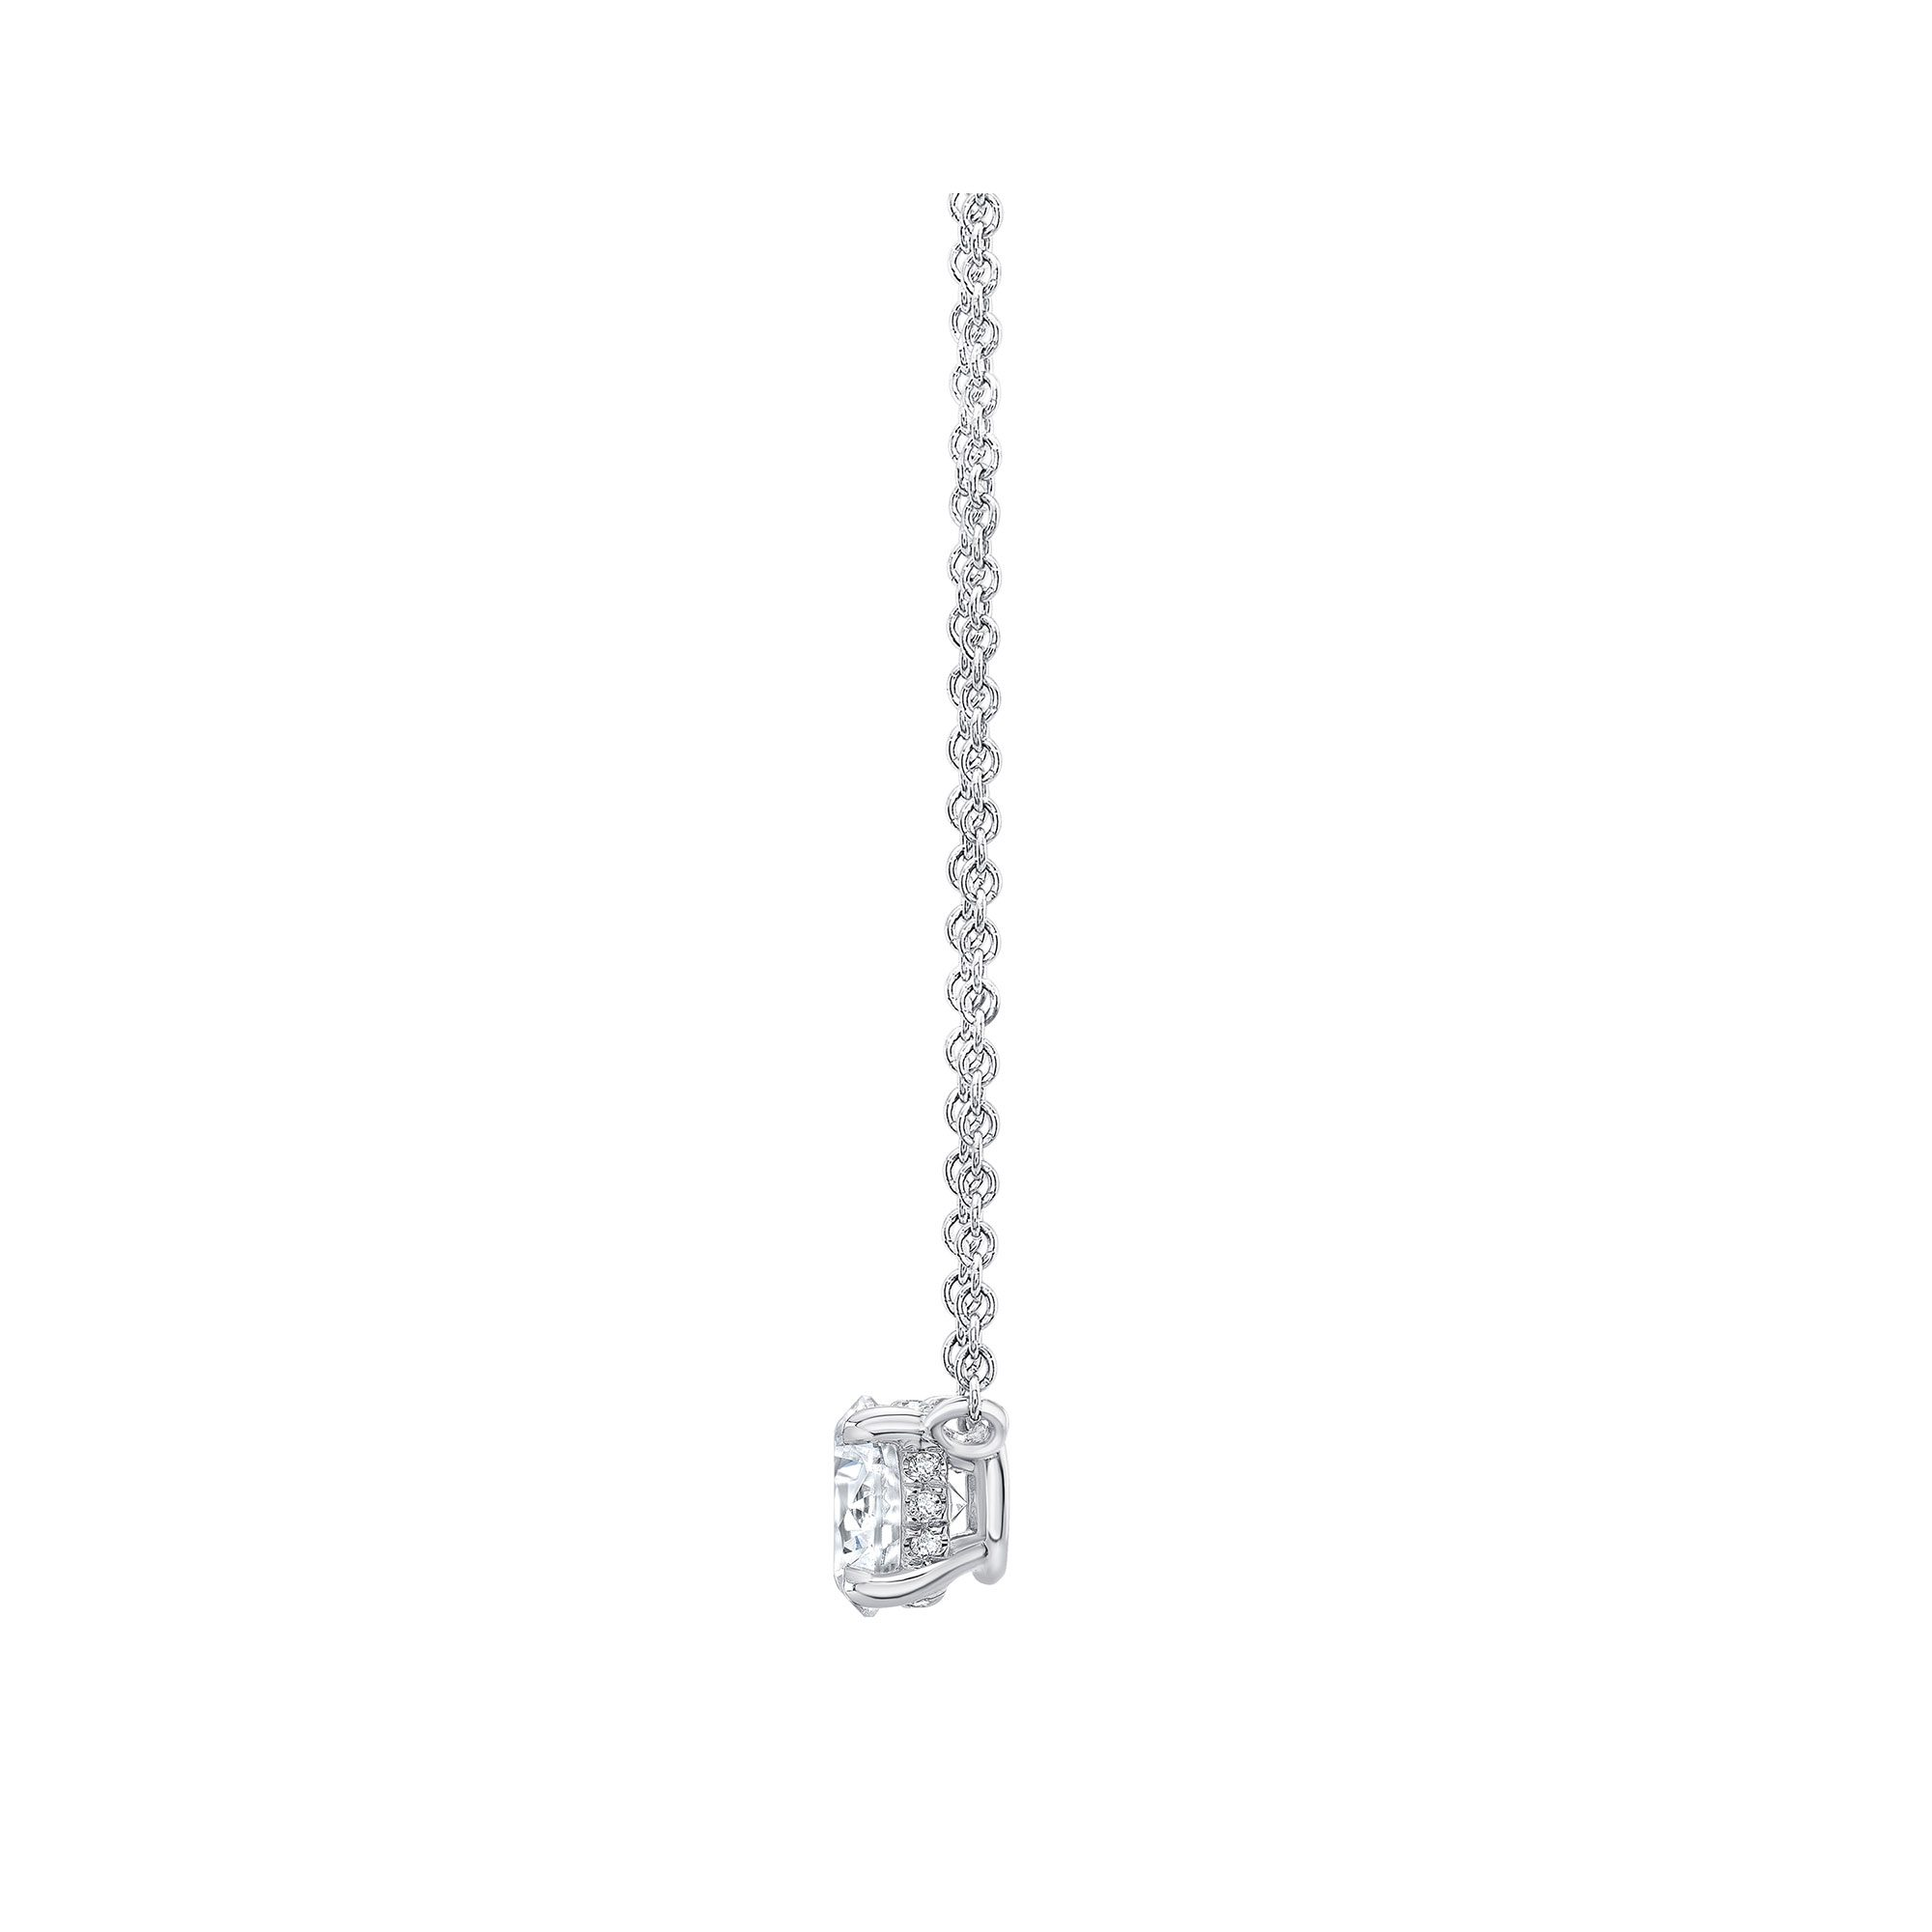 Marie Round Brilliant 2.5 Carat Lab Grown Diamond Necklace Side View in White Gold